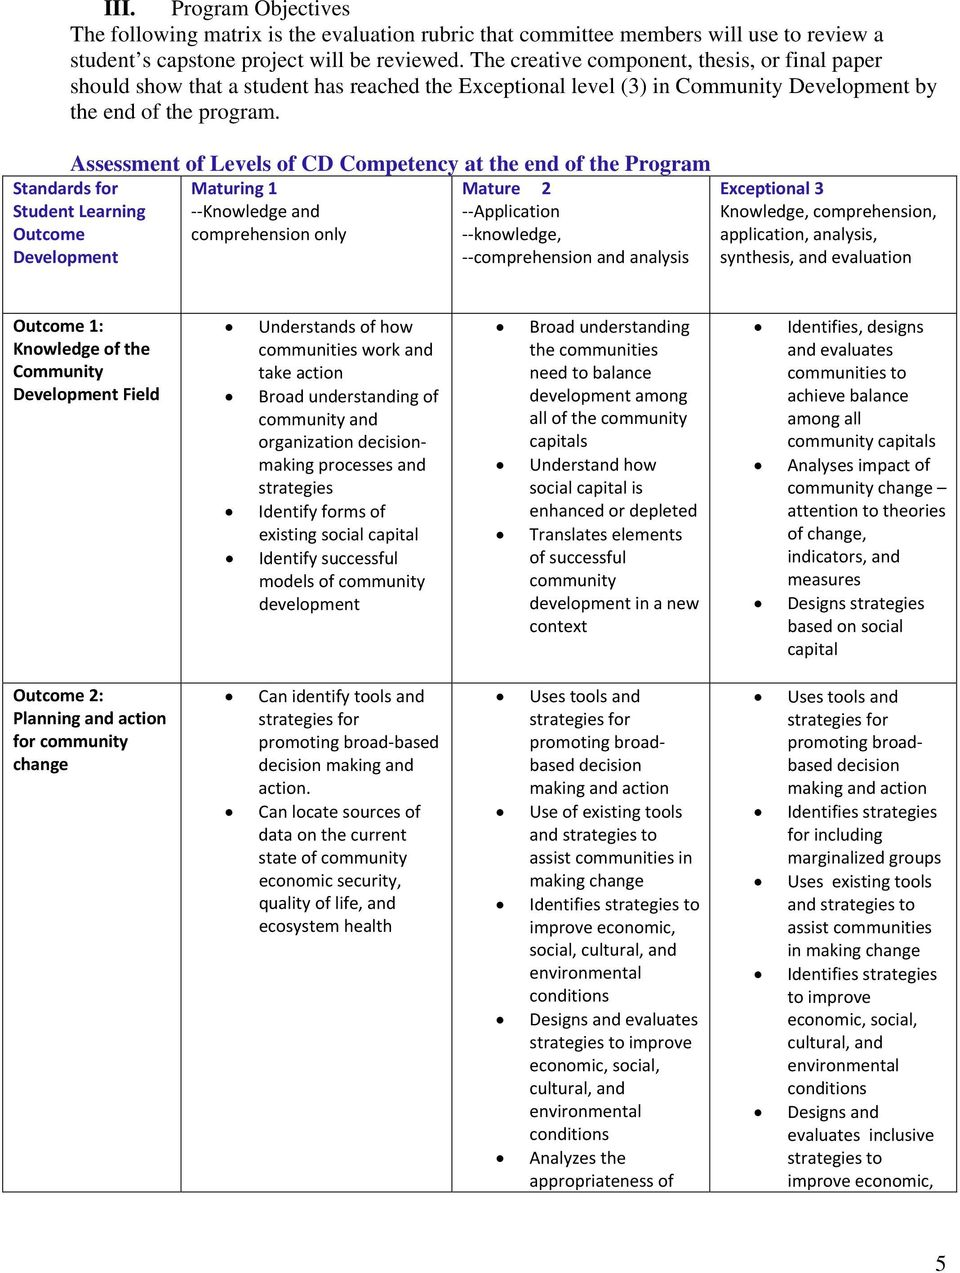 Assessment of Levels of CD Competency at the end of the Program Maturing 1 Knowledge and comprehension only Standards for Student Learning Outcome Development Mature 2 Application knowledge,